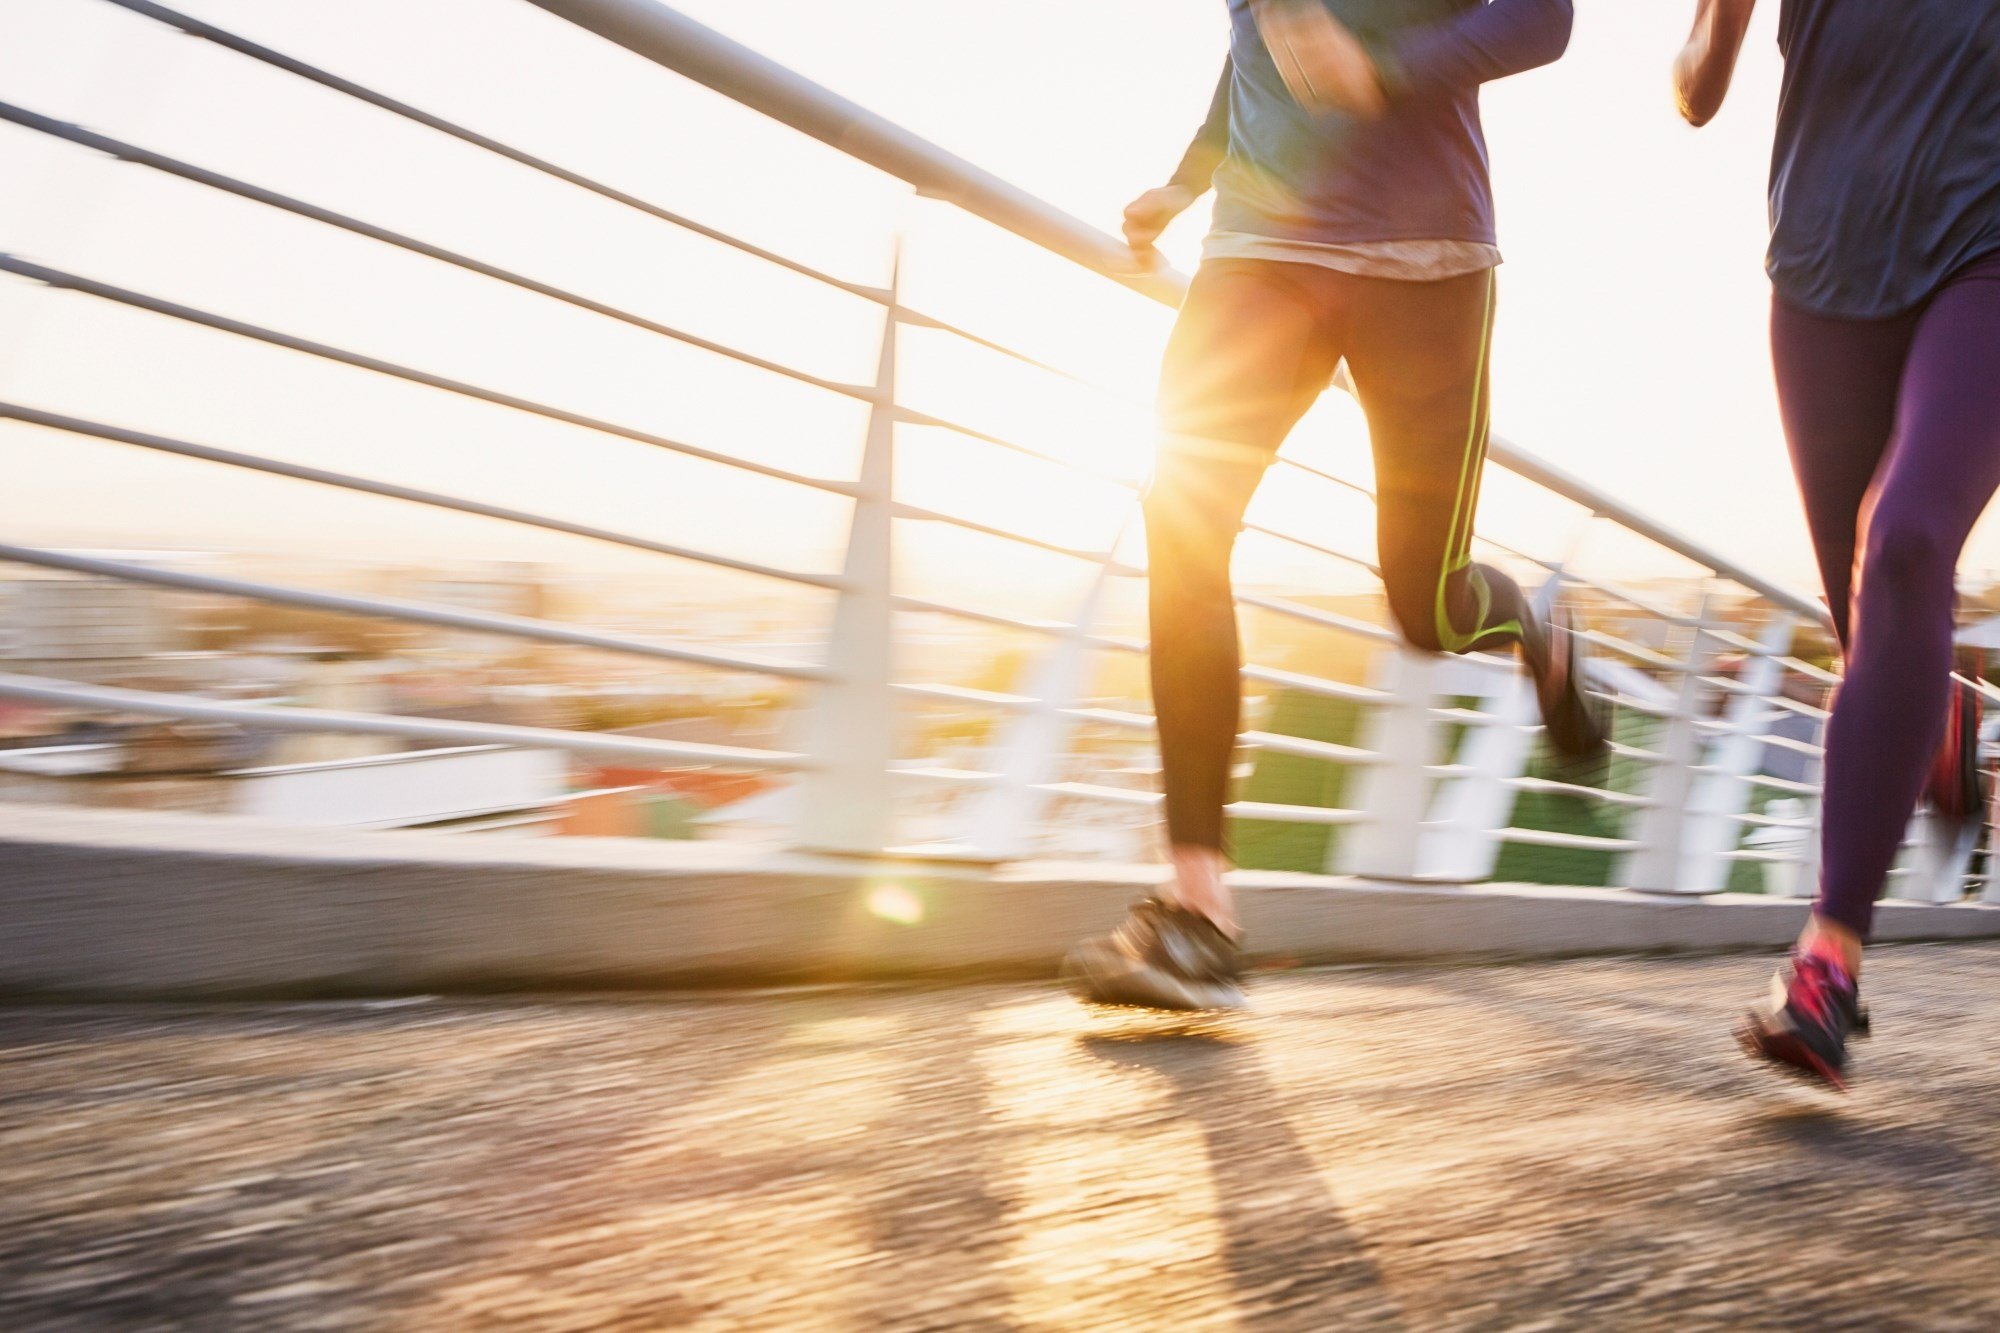 Midlife Fitness Linked to Lower Risk of CVD Death